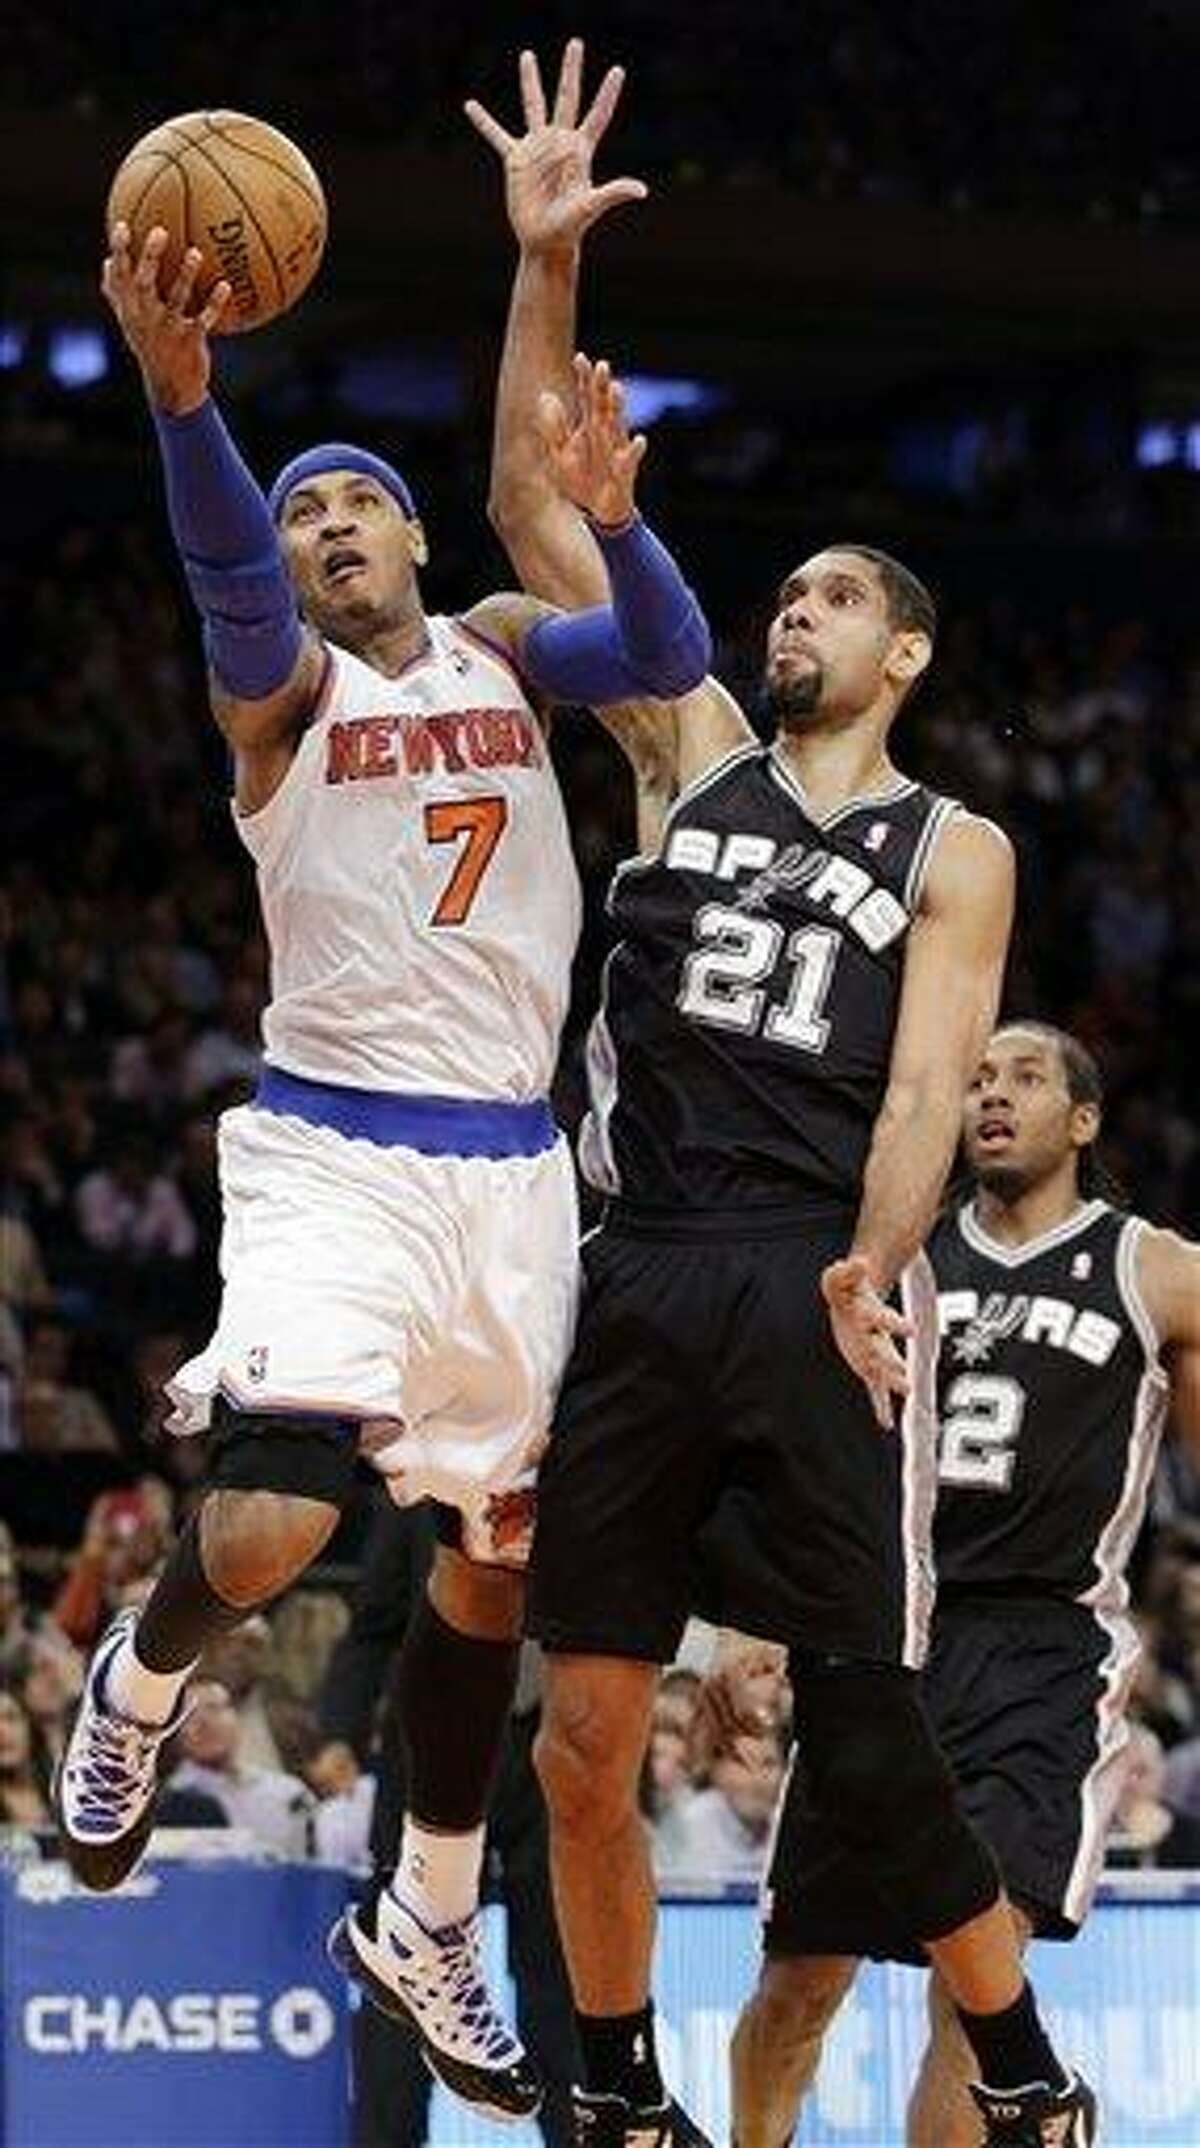 New York Knicks forward Carmelo Anthony (7) shoots a layup against San Antonio Spurs forward Tim Duncan (21) in the second half of their NBA basketball game at Madison Square Garden in New York, Thursday, Jan. 3, 2013. The Knicks won 100-83. (AP Photo/Kathy Willens)